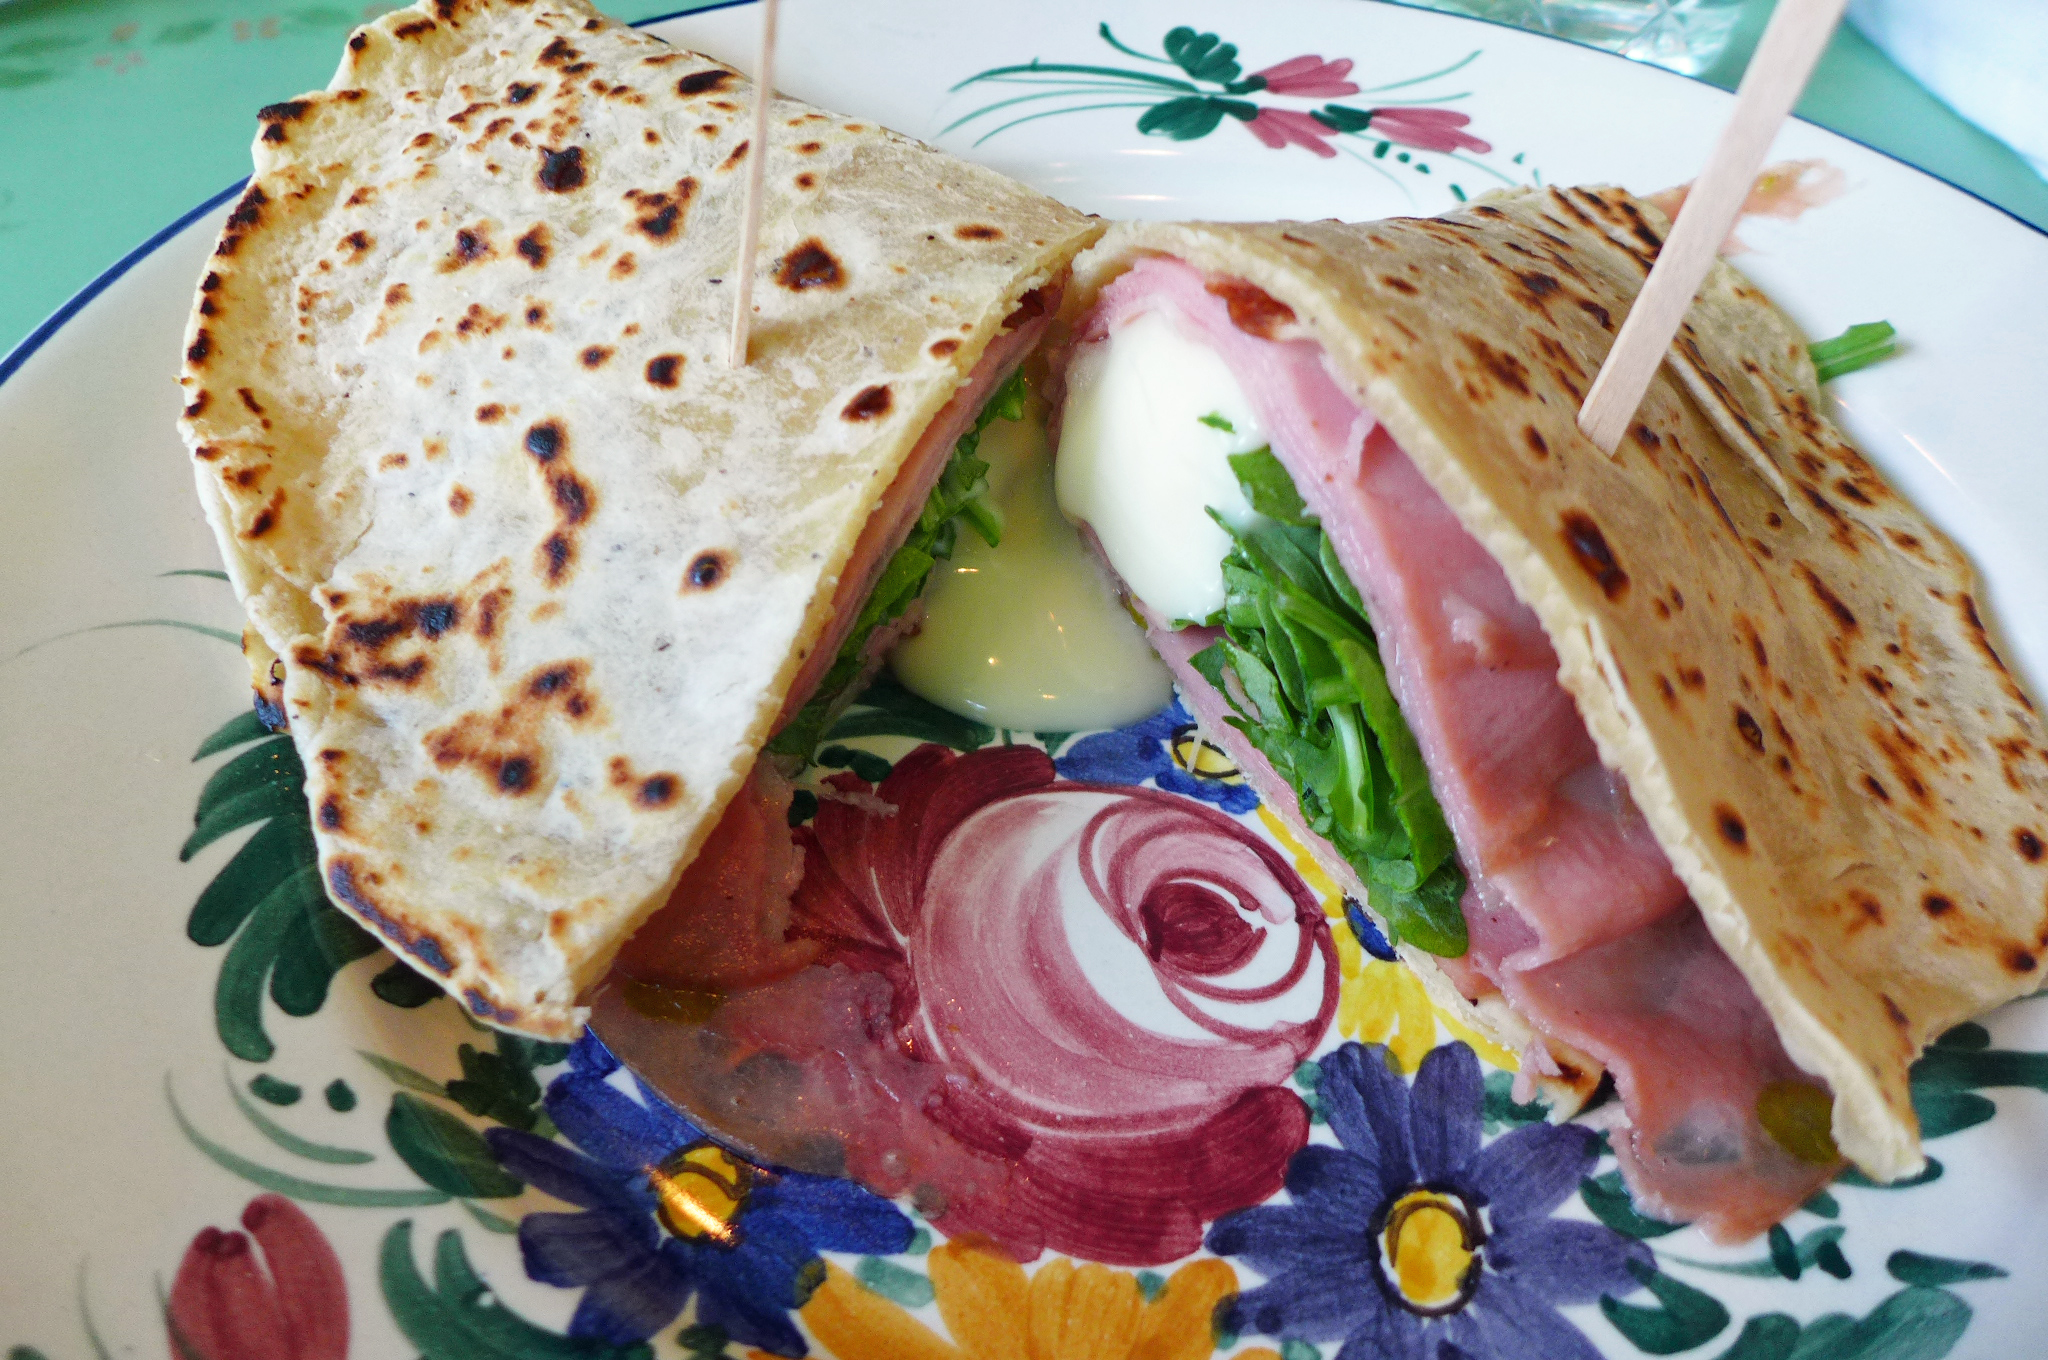 A flatbread sandwich with the dappled bread folded over meat and cheese on a flowered plate...